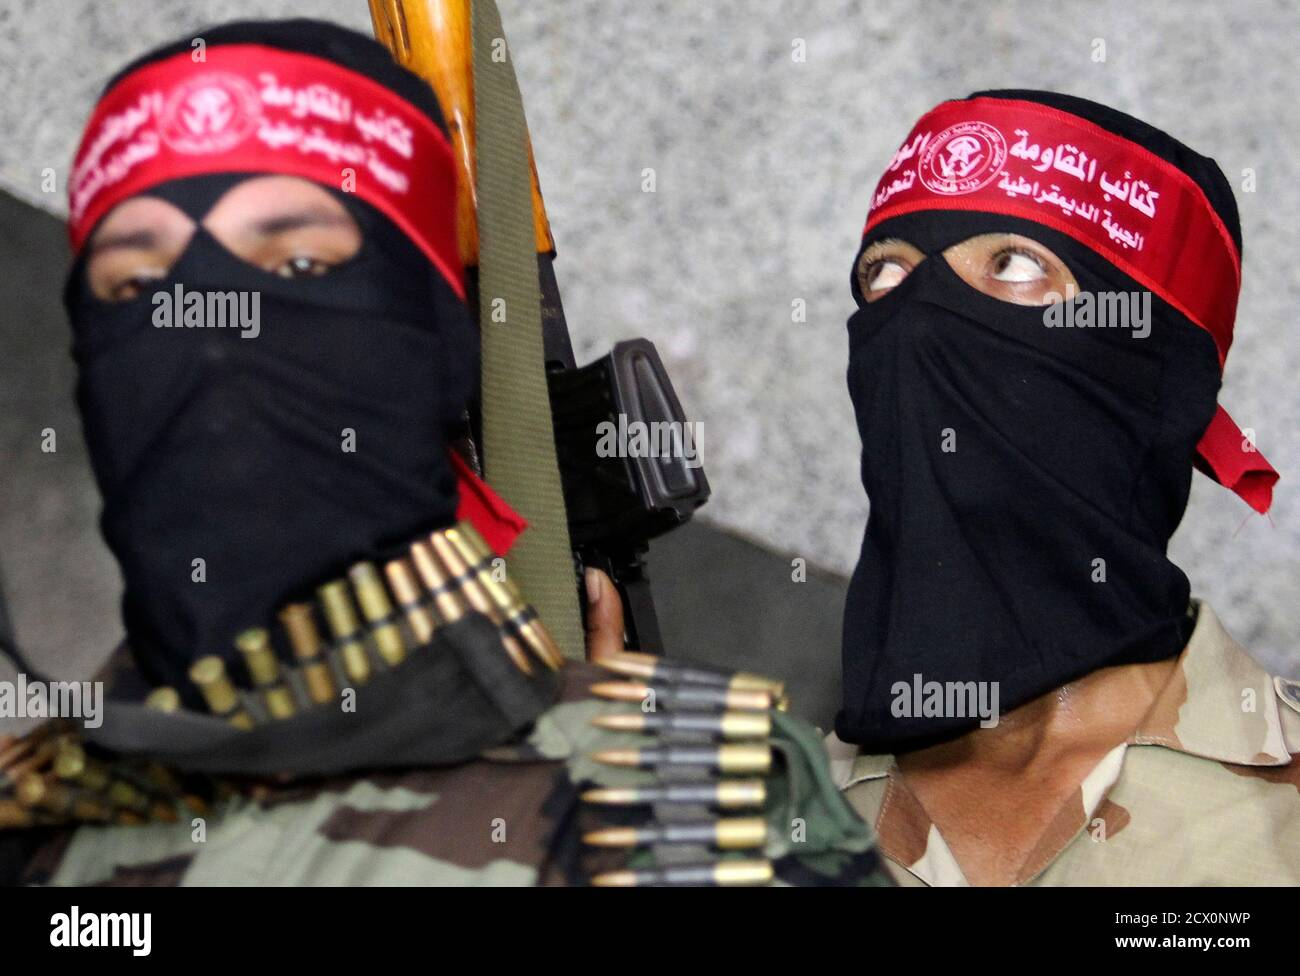 Palestinian militants from the Popular Front for the Liberation of Palestine (PFLP) take part in a news conference in Gaza City August 27, 2014. An open-ended ceasefire in the Gaza war between Israel and the Palestinians held on Wednesday as Prime Minister Benjamin Netanyahu faced strong criticism in his country's newspapers over a campaign in which no clear victor emerged. REUTERS/Ahmed Zakot (GAZA - Tags: POLITICS CIVIL UNREST CONFLICT) Foto de stock